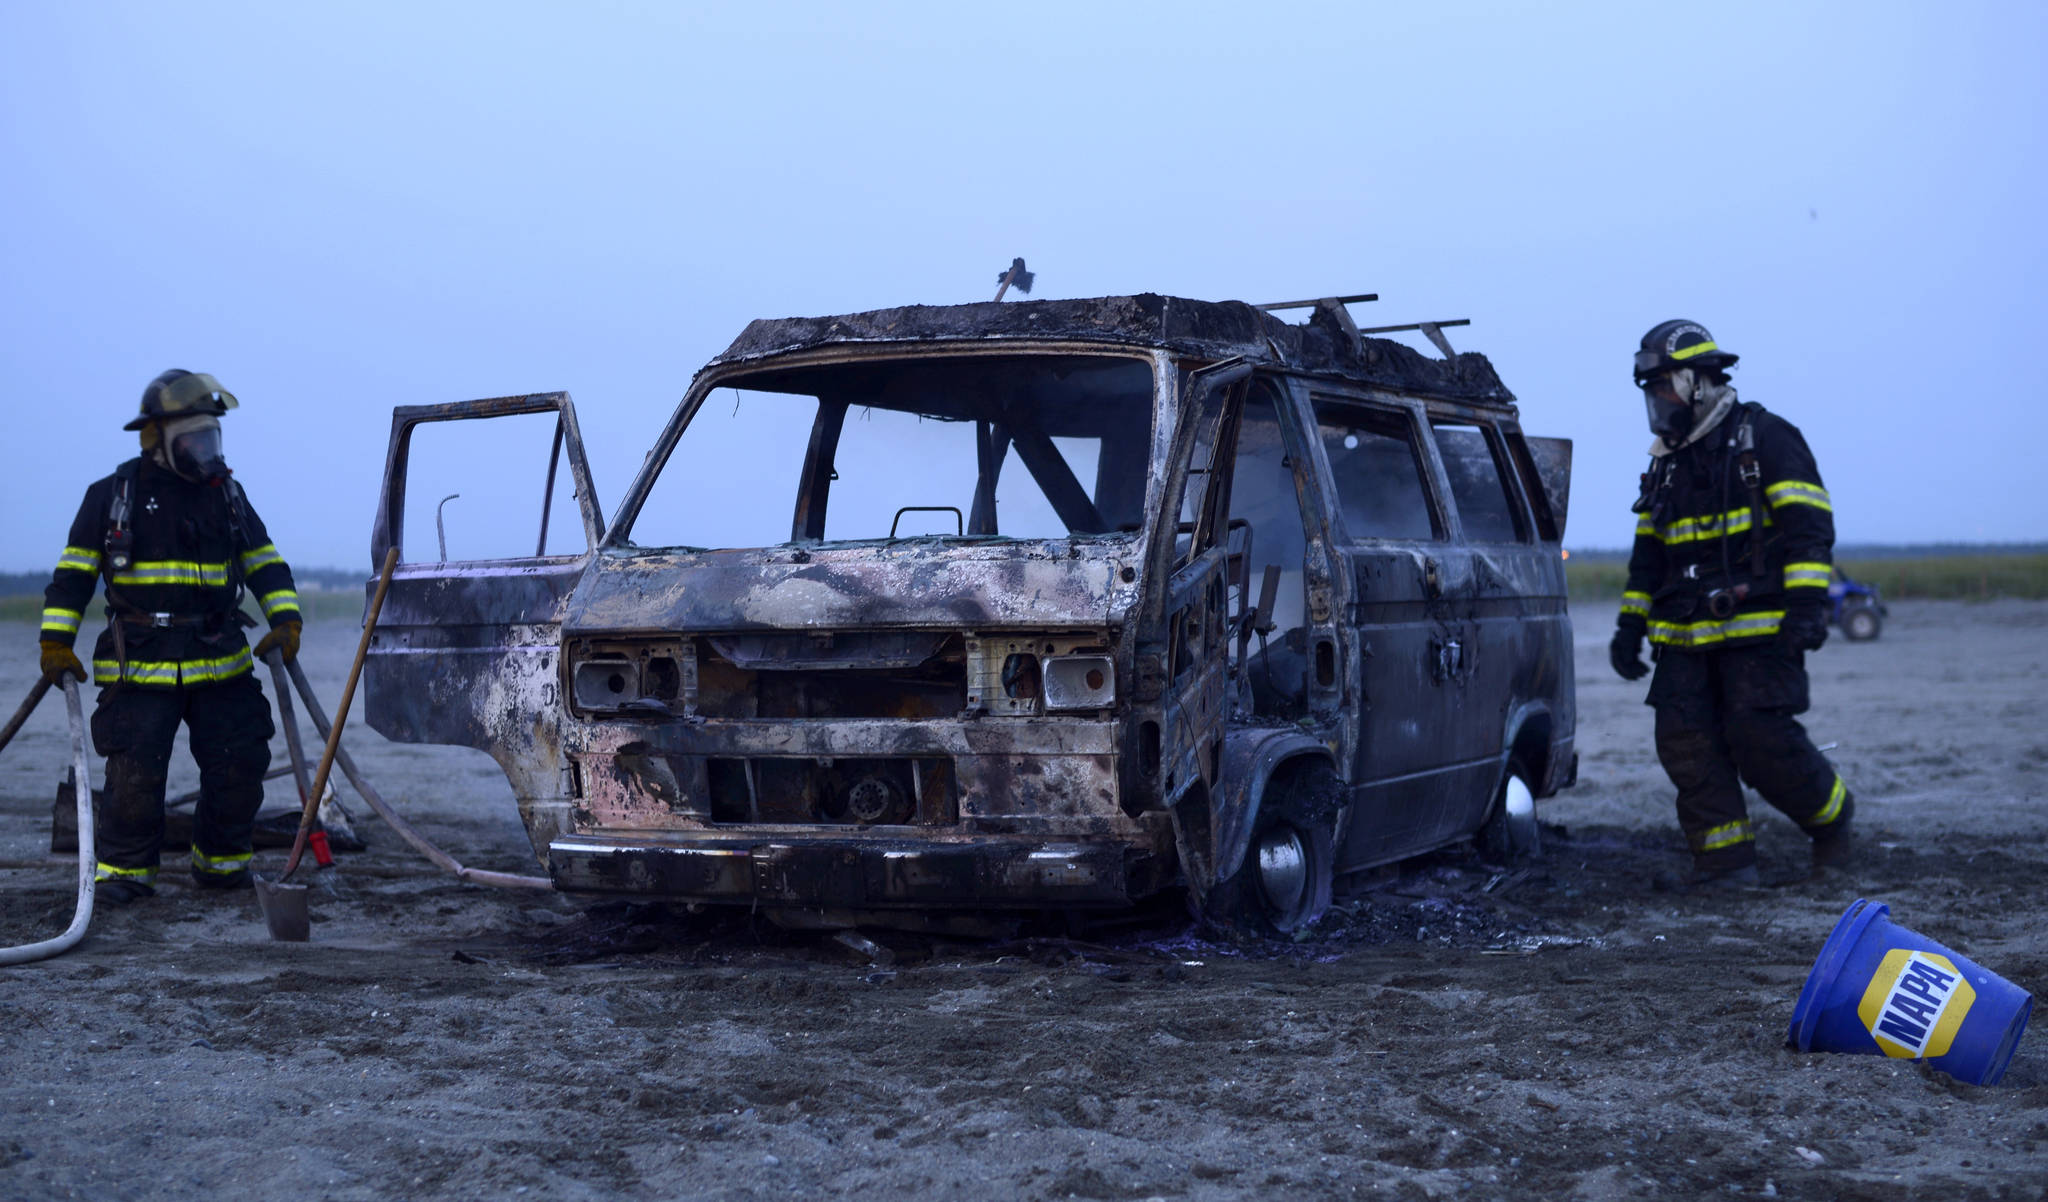 Two Kenai firefighters clean up a 1987 Volkswagen Westfallia camper van that caught fire Thursday, July 13, 2017 on the south beach in Kenai, Alaska. No one was in the van when it burnt, and there were no injuries. (Photo by Ben Boettger/Peninsula Clarion)